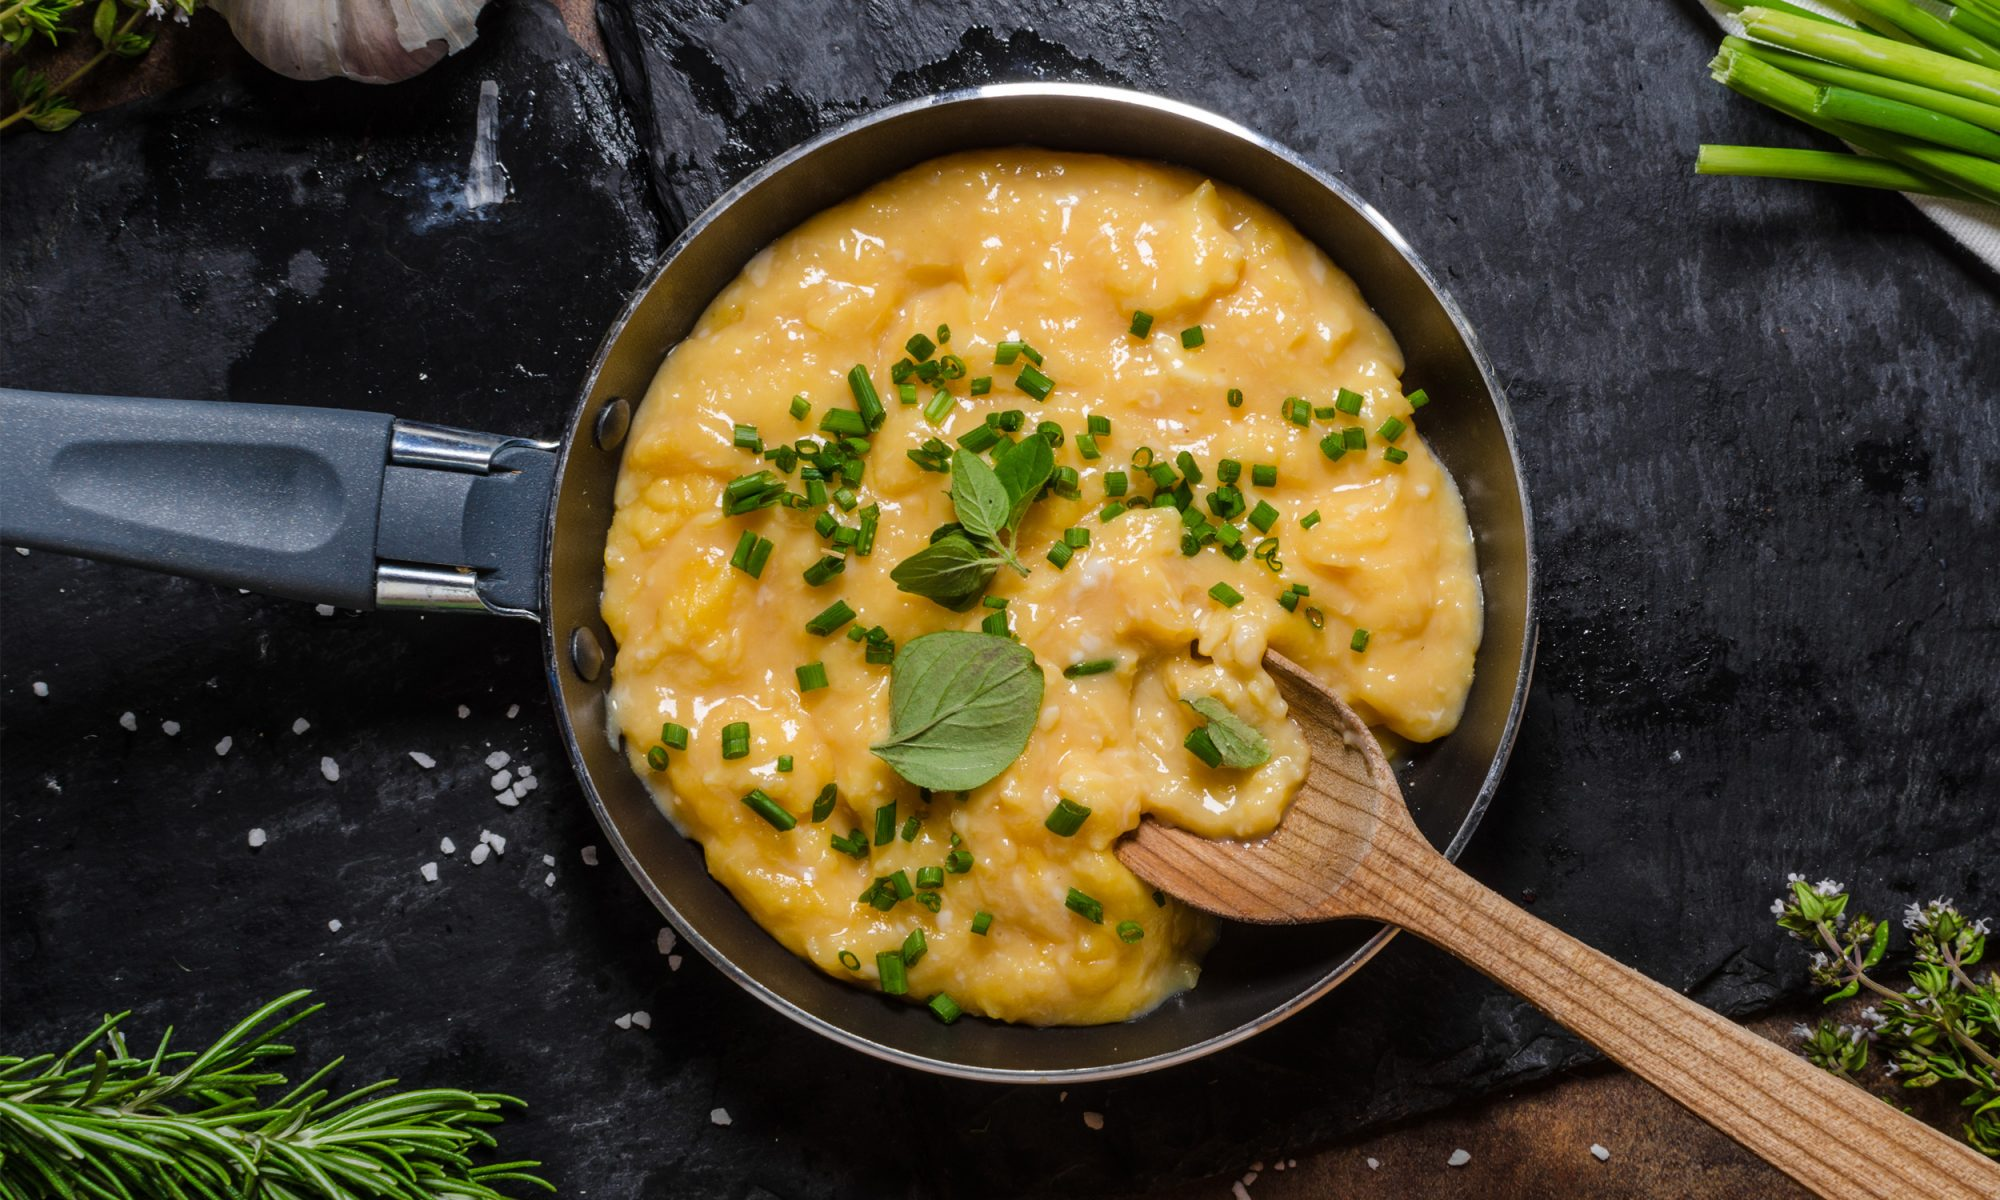 EC: Add Excitement to Your Scrambled Eggs with One Clever Ingredient